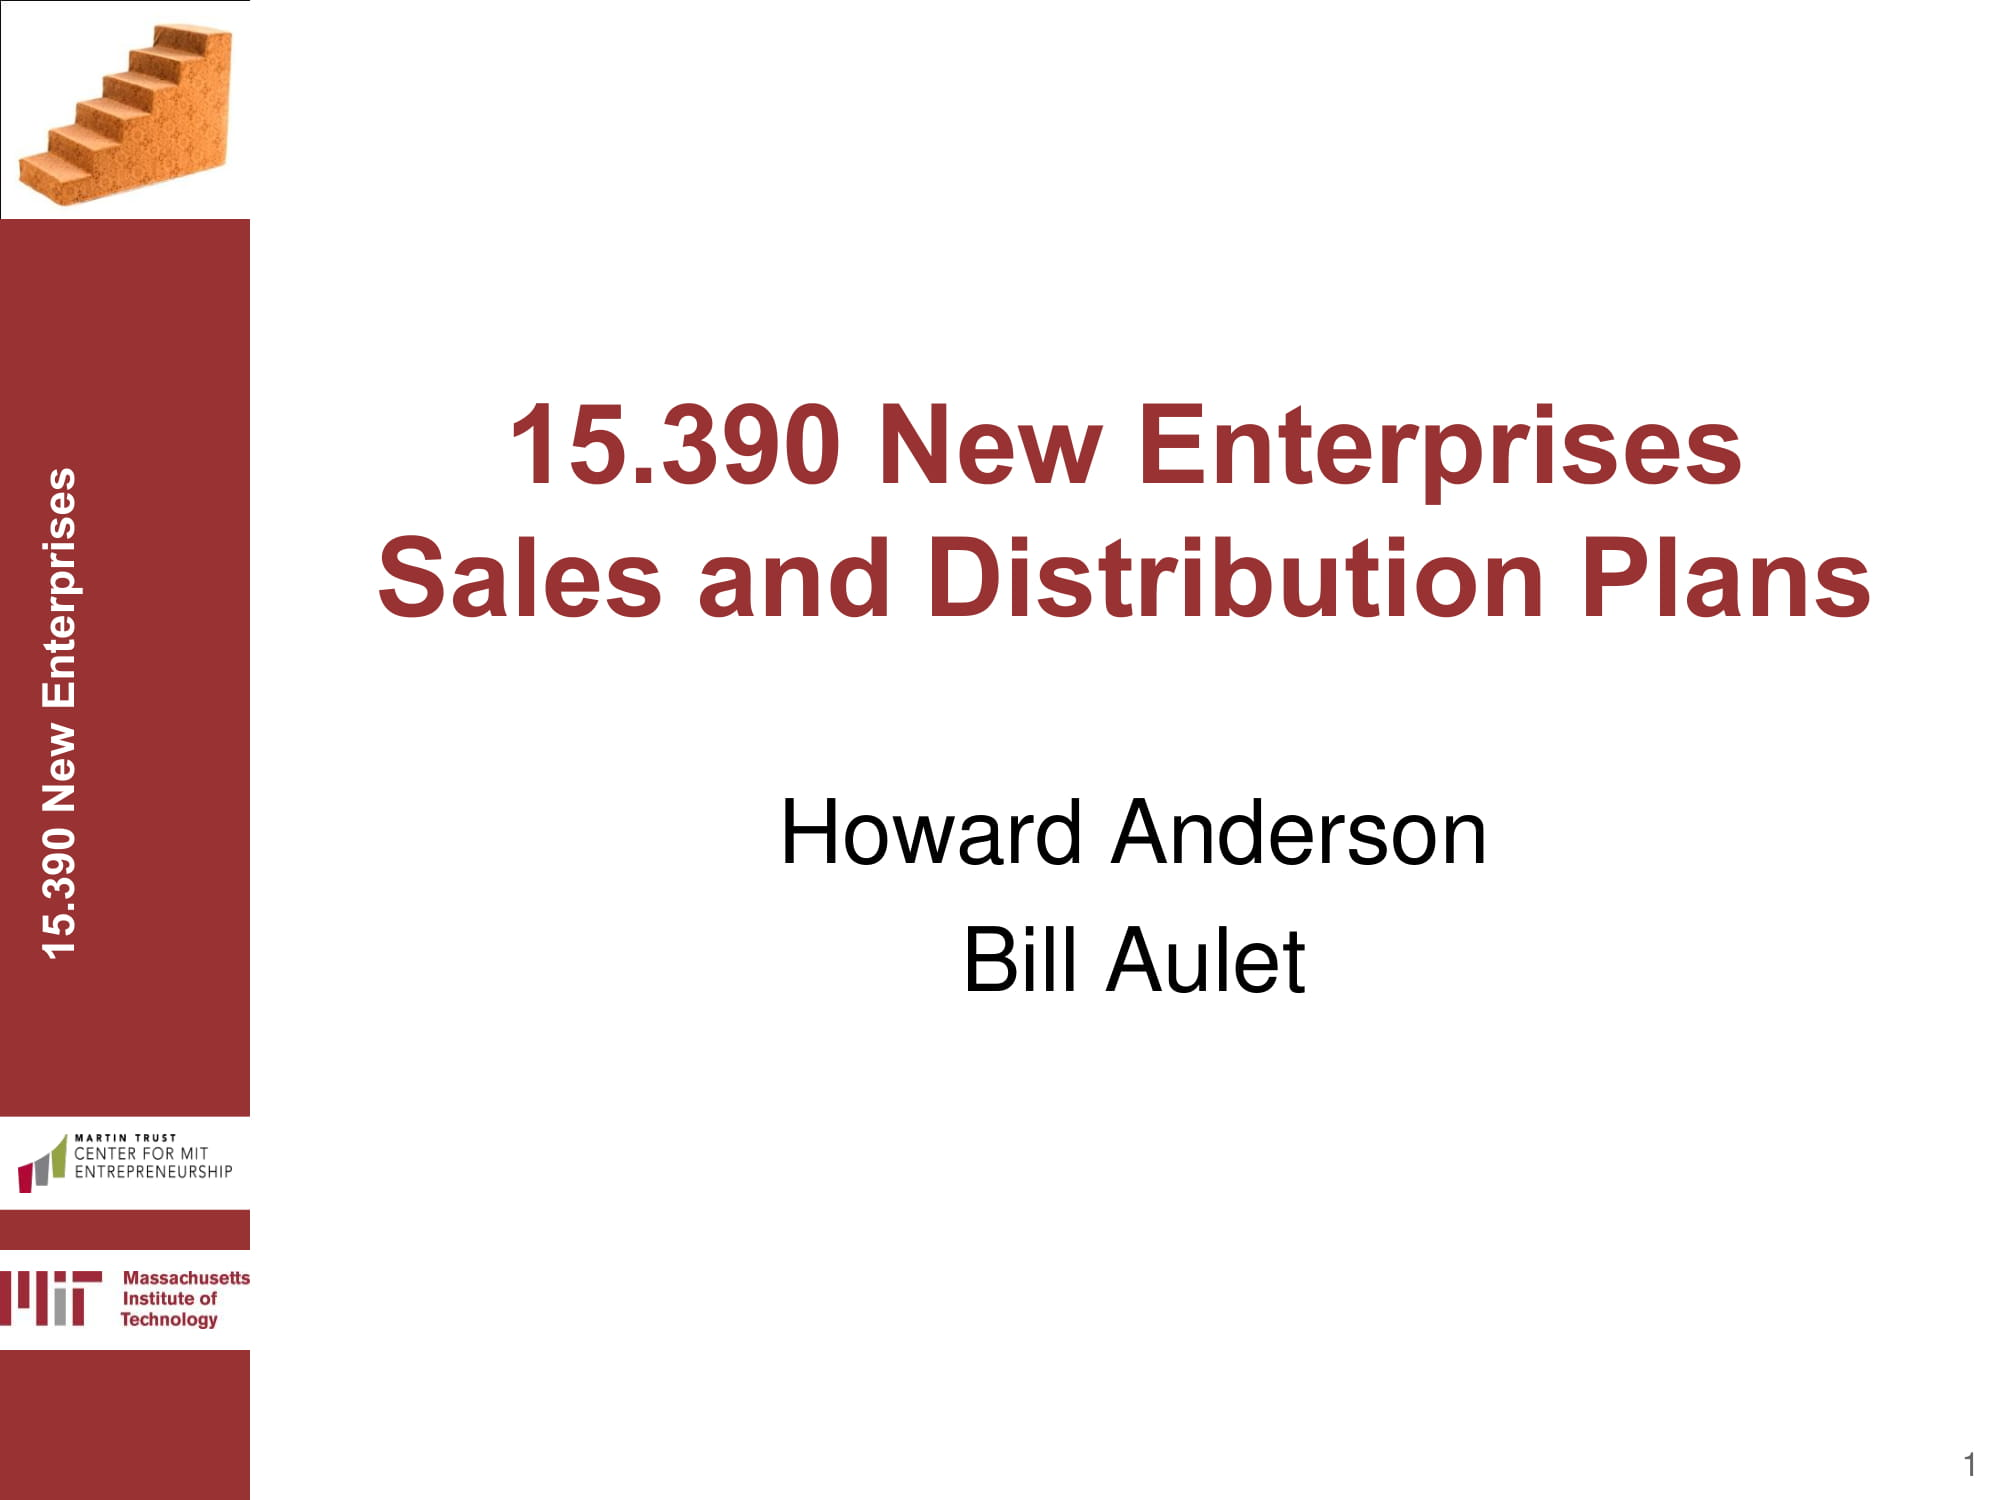 new enterprises sales and distribution action plan example 011